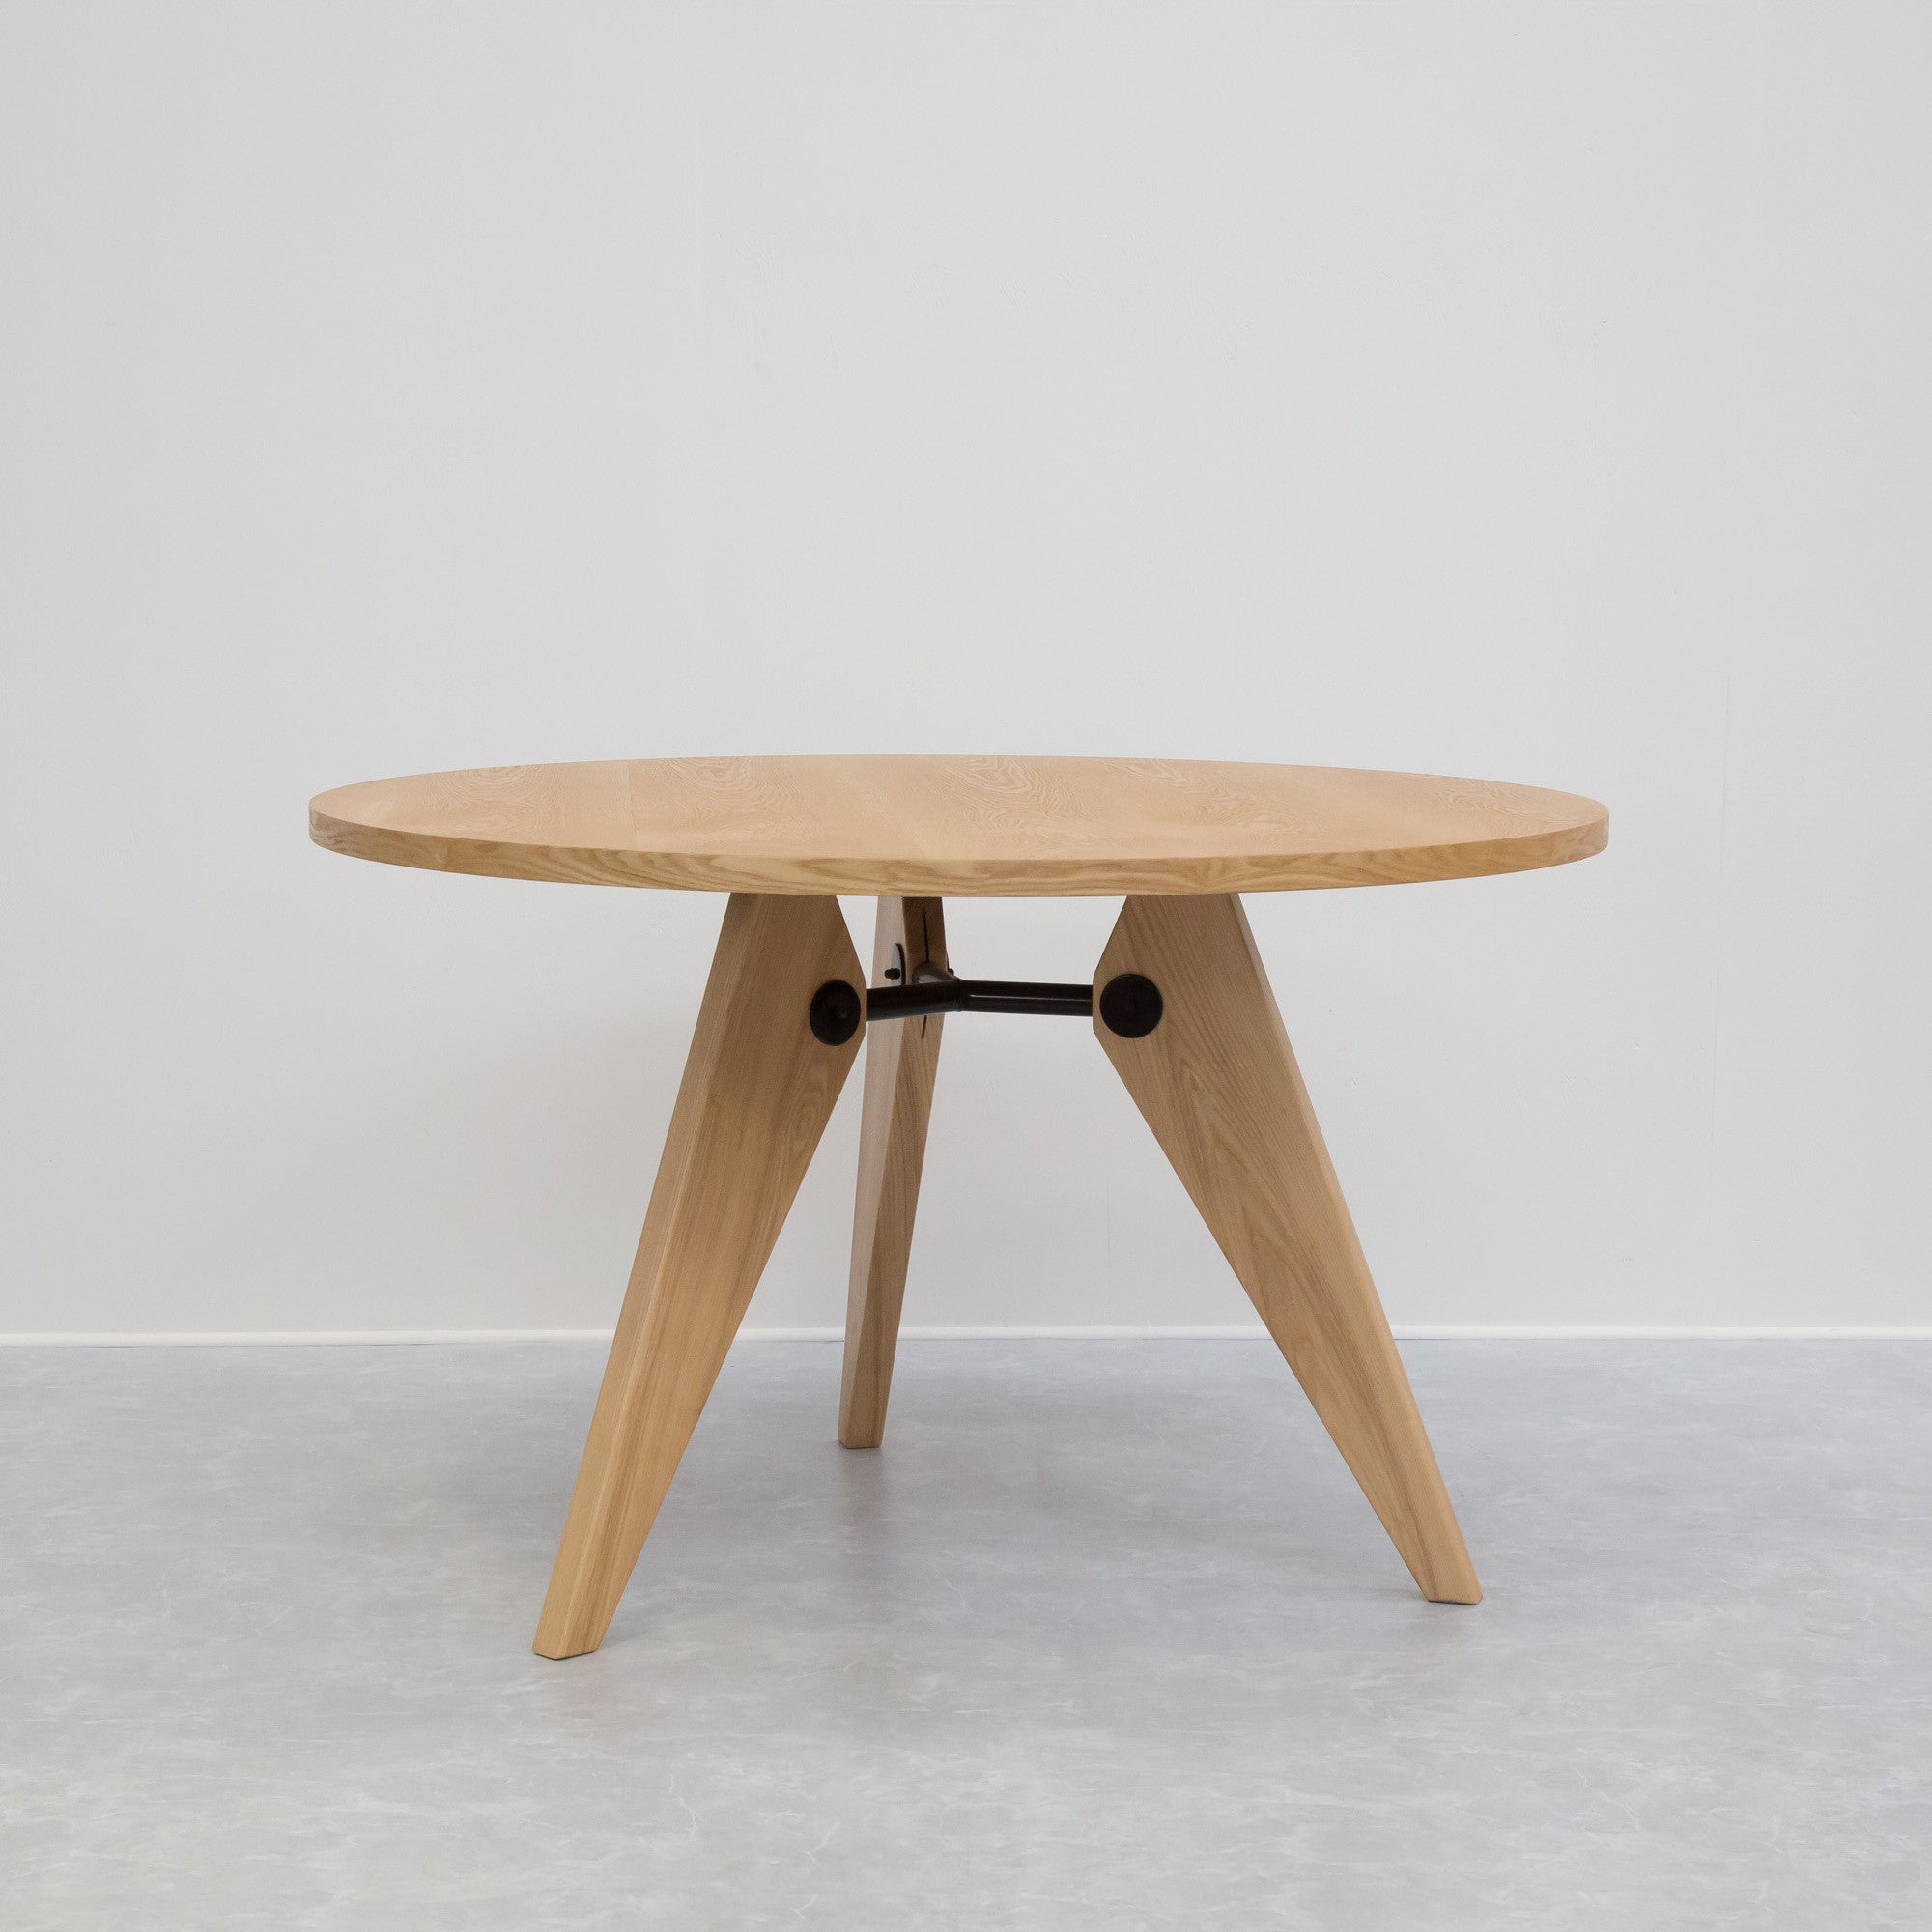 Gueridon Round Dining Table Replica – Eat Furniture